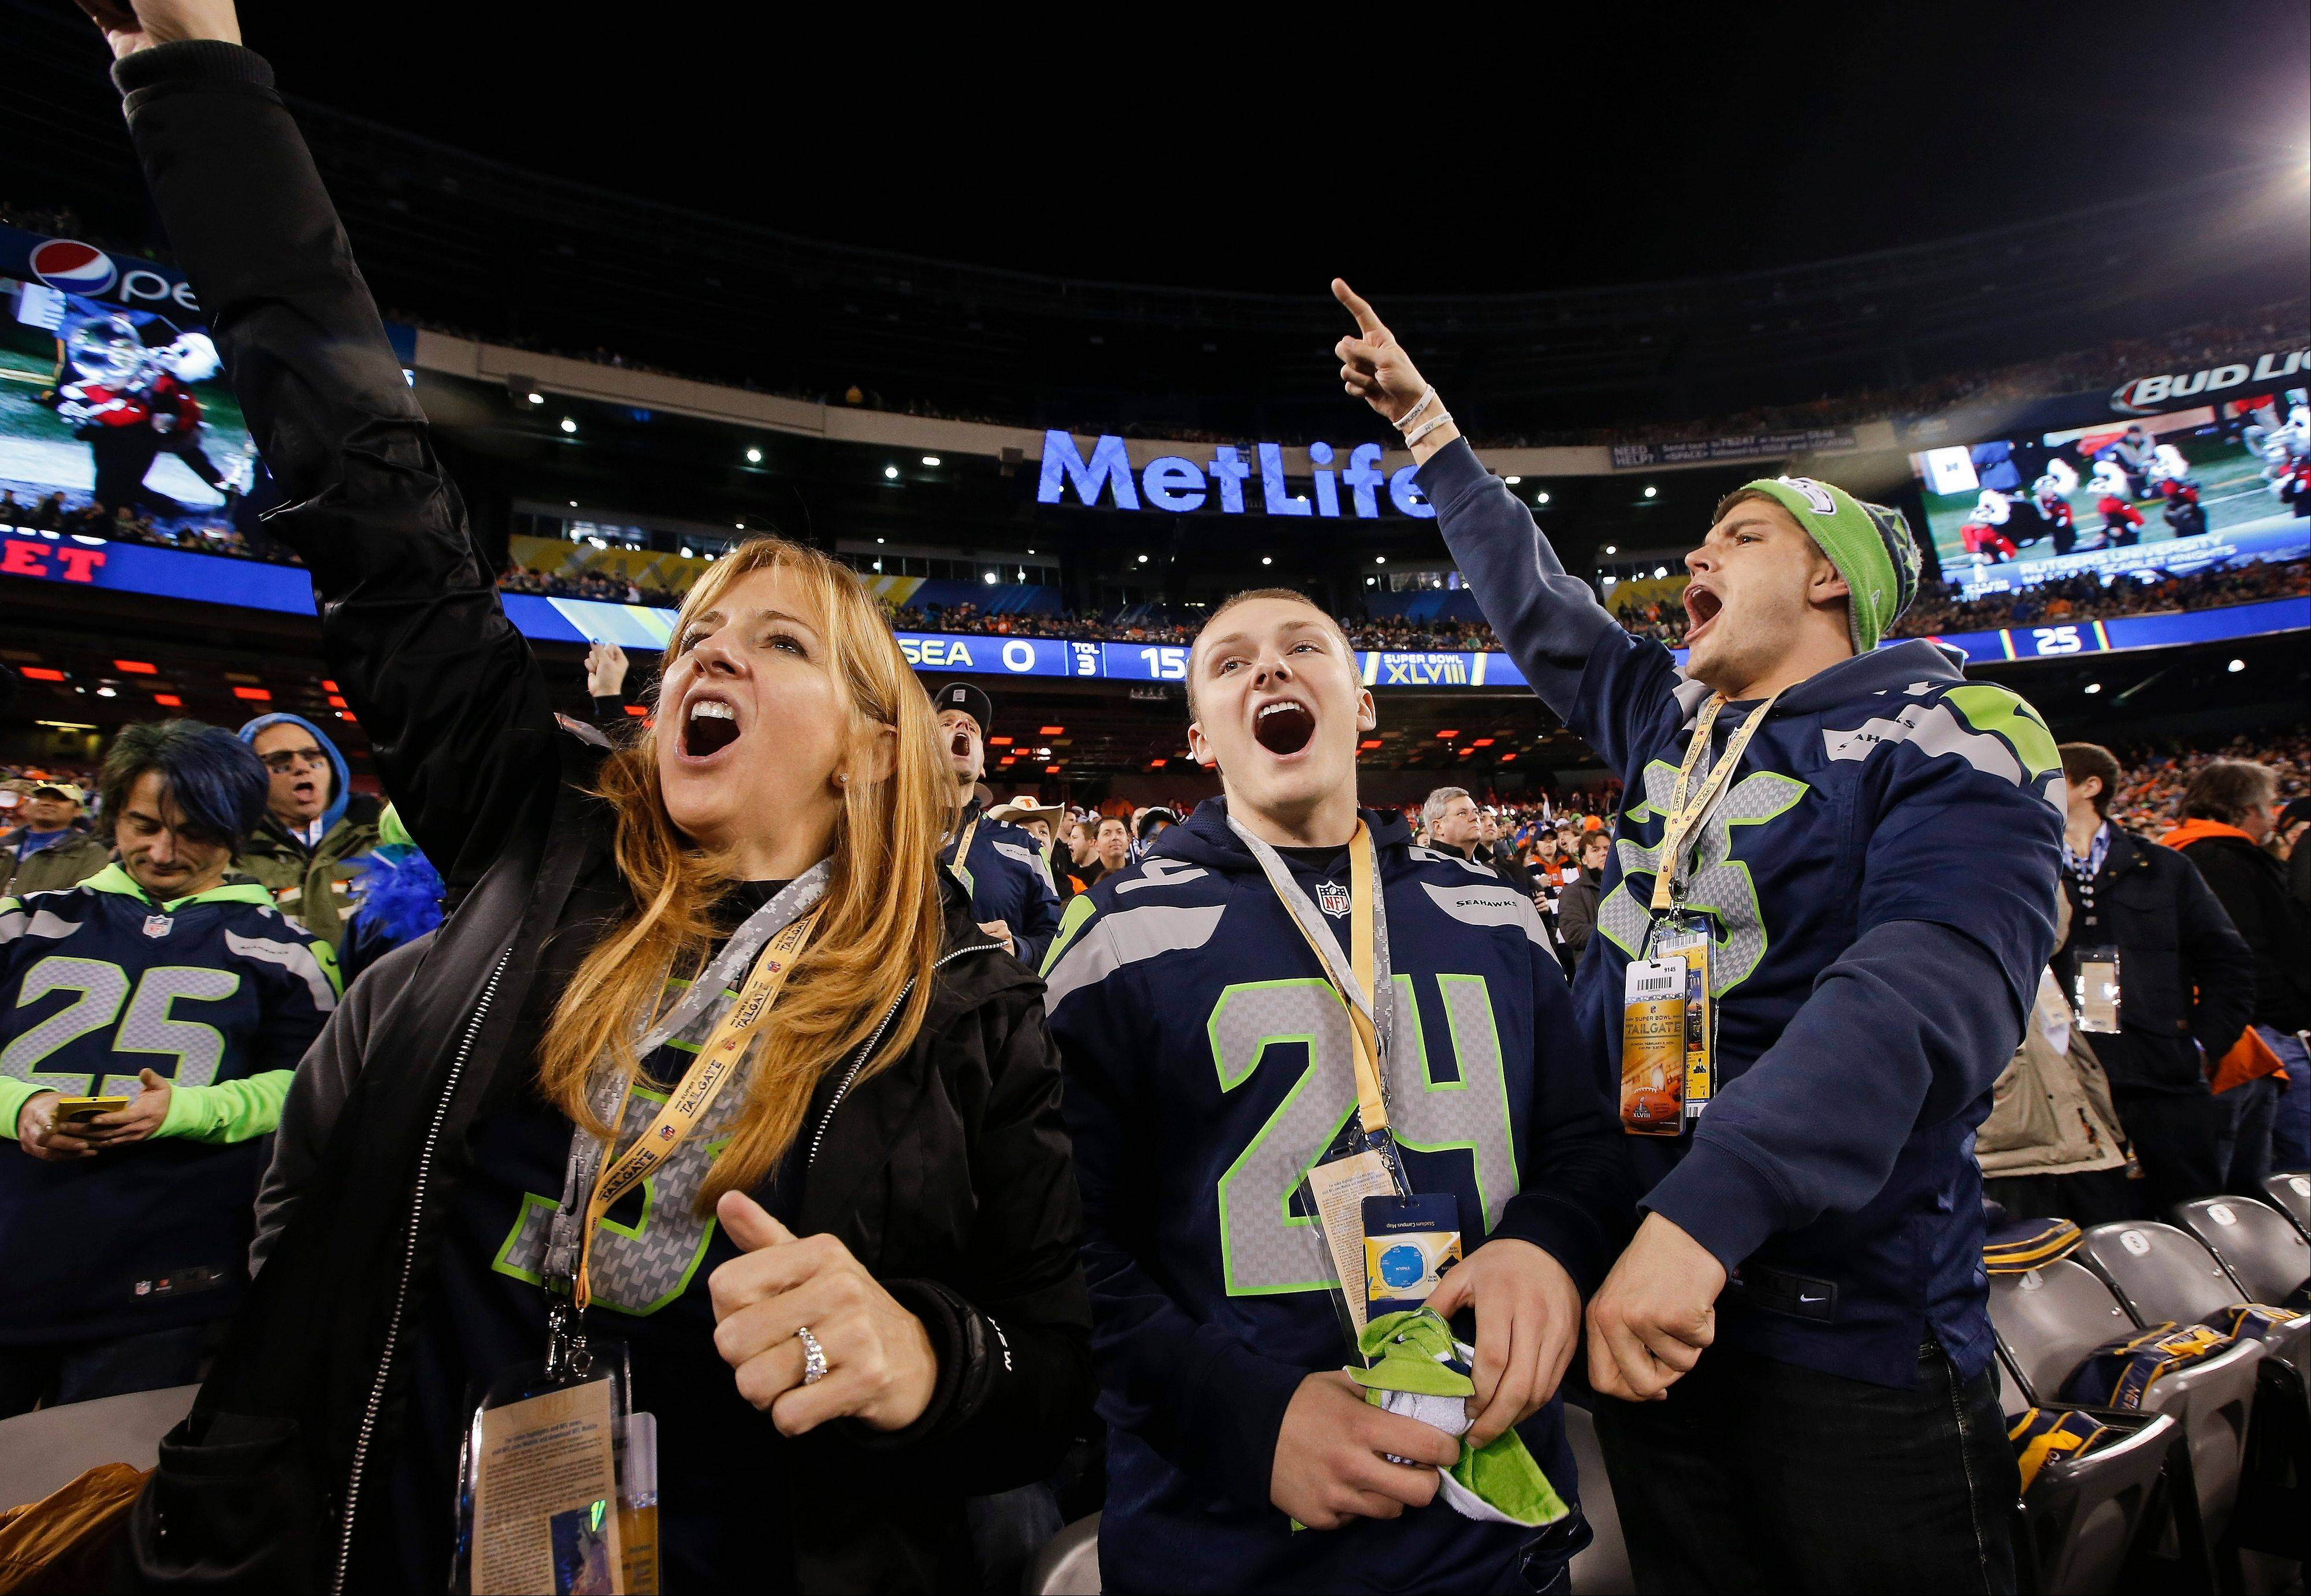 Seattle Seahawks fans cheer before the NFL Super Bowl XLVIII football game.